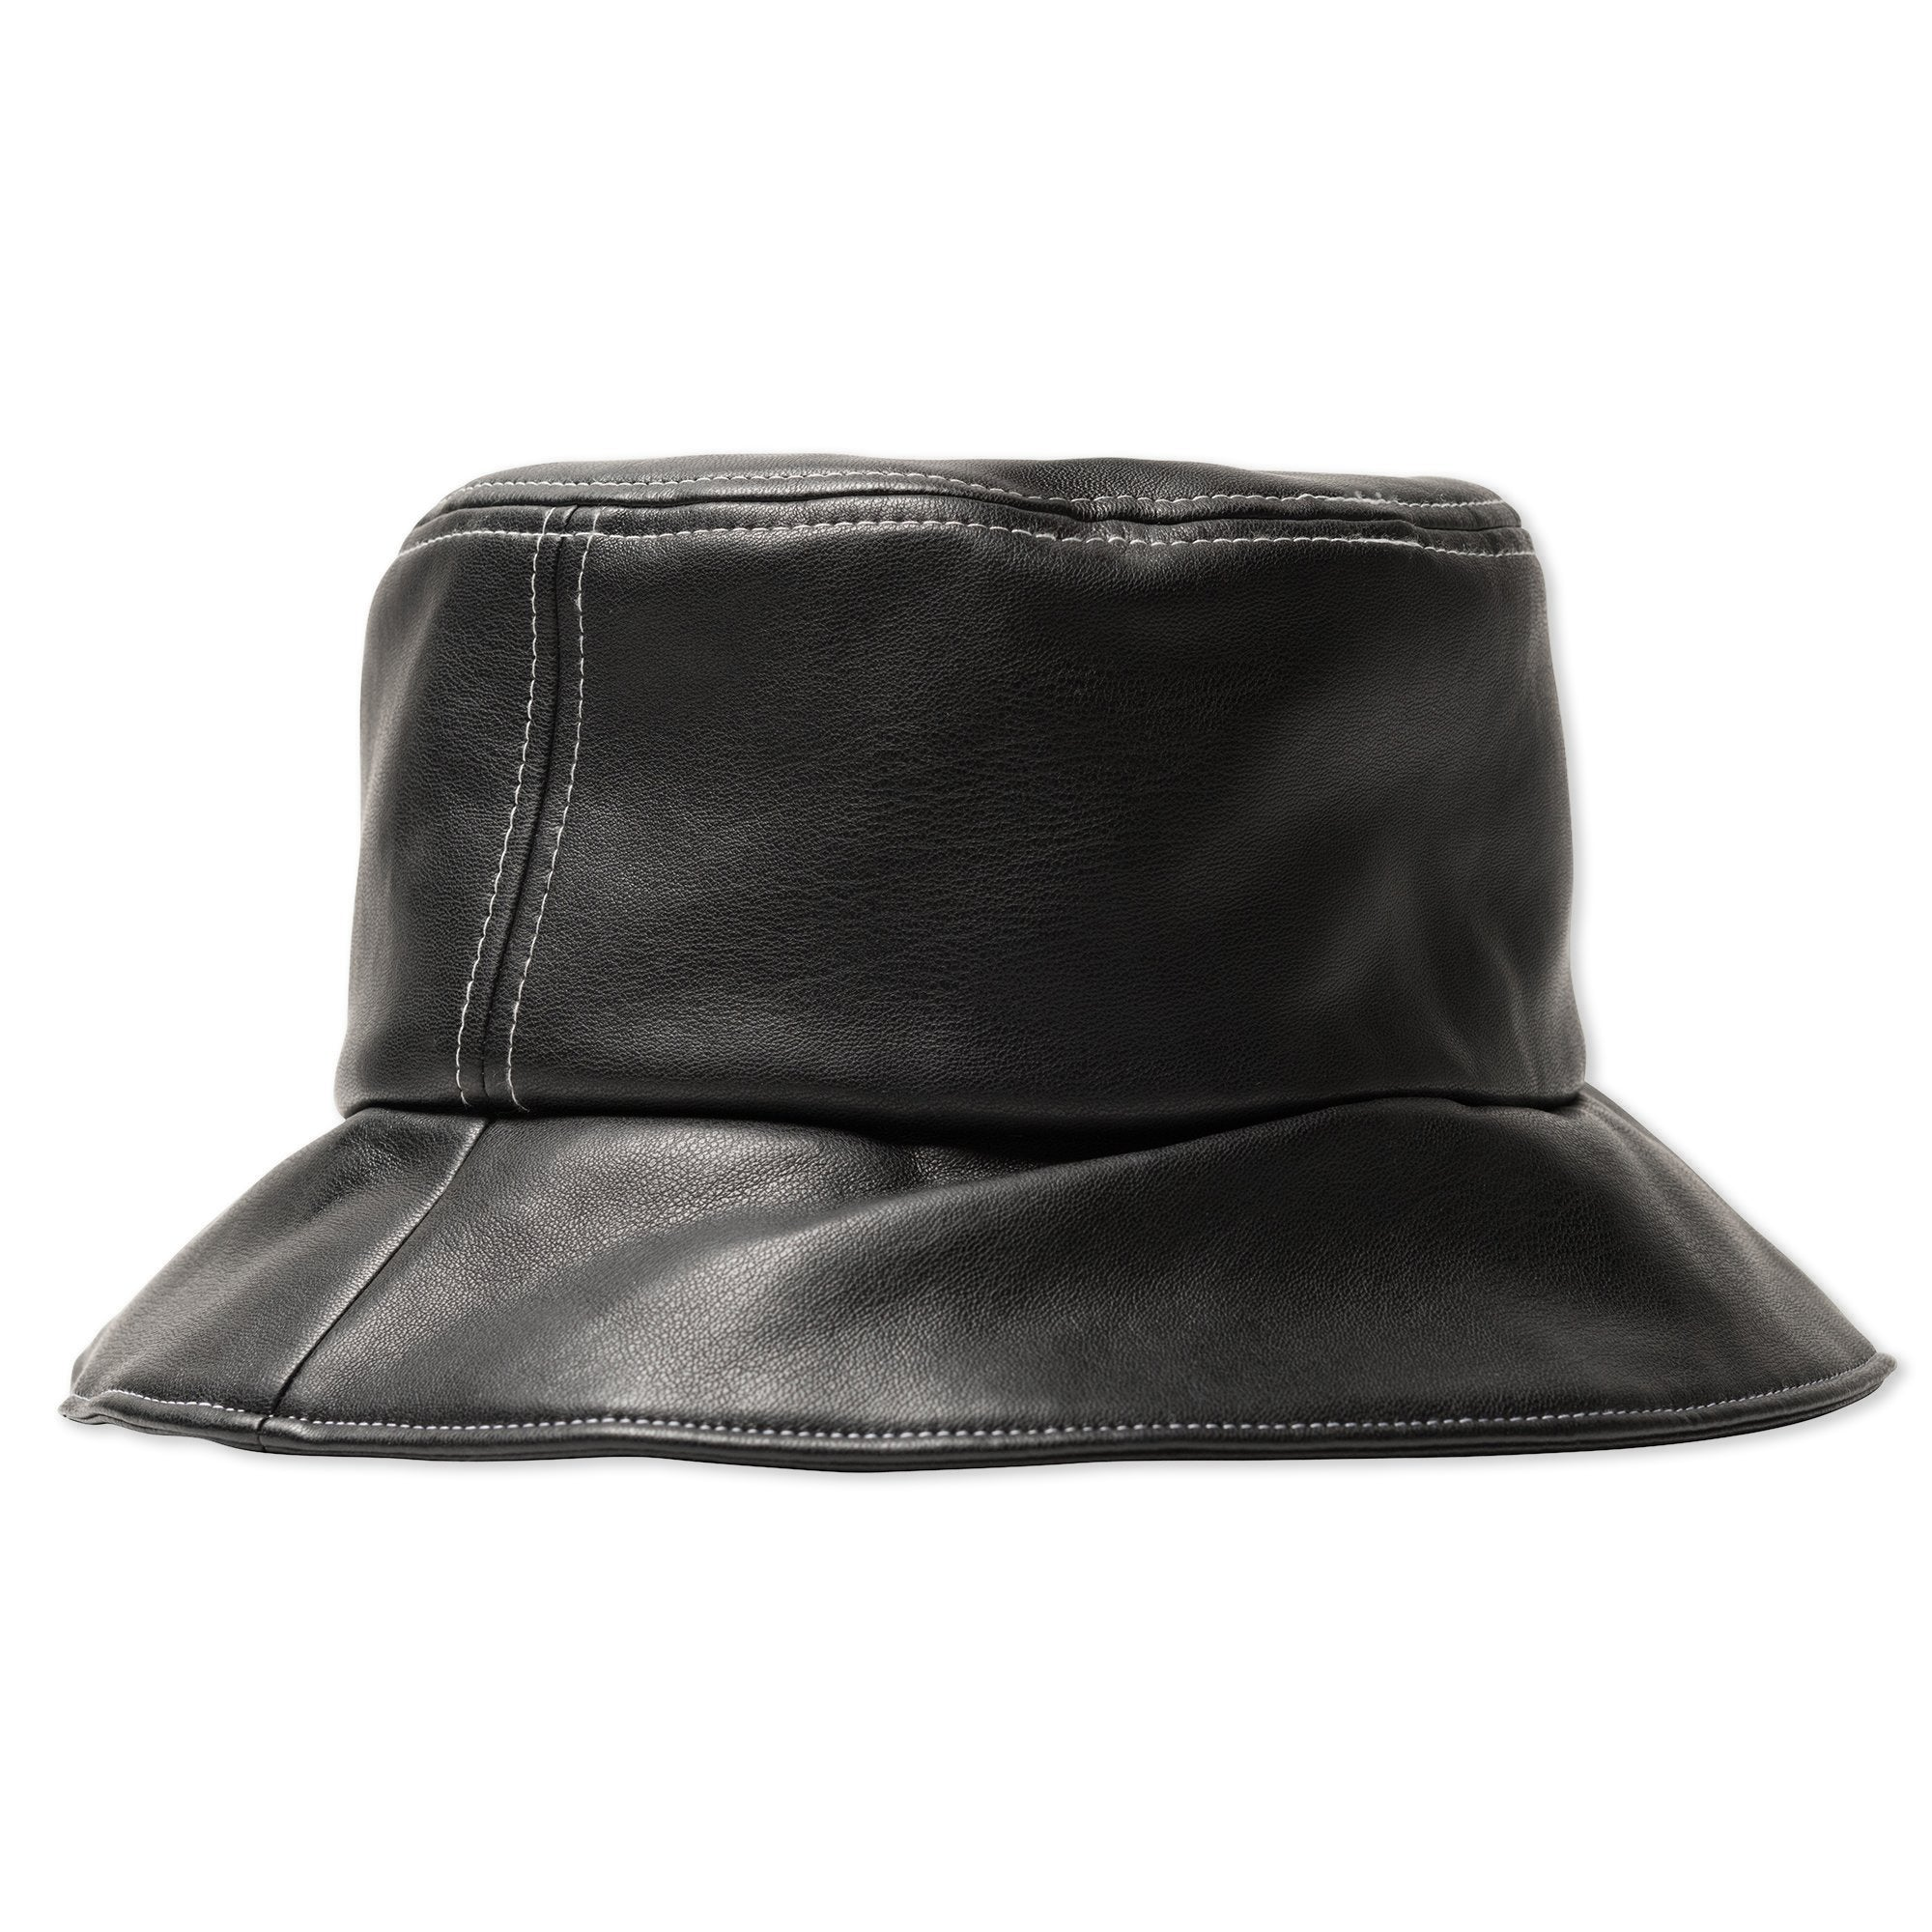 Stussy PU Contrast Stitch Bucket Hat Black